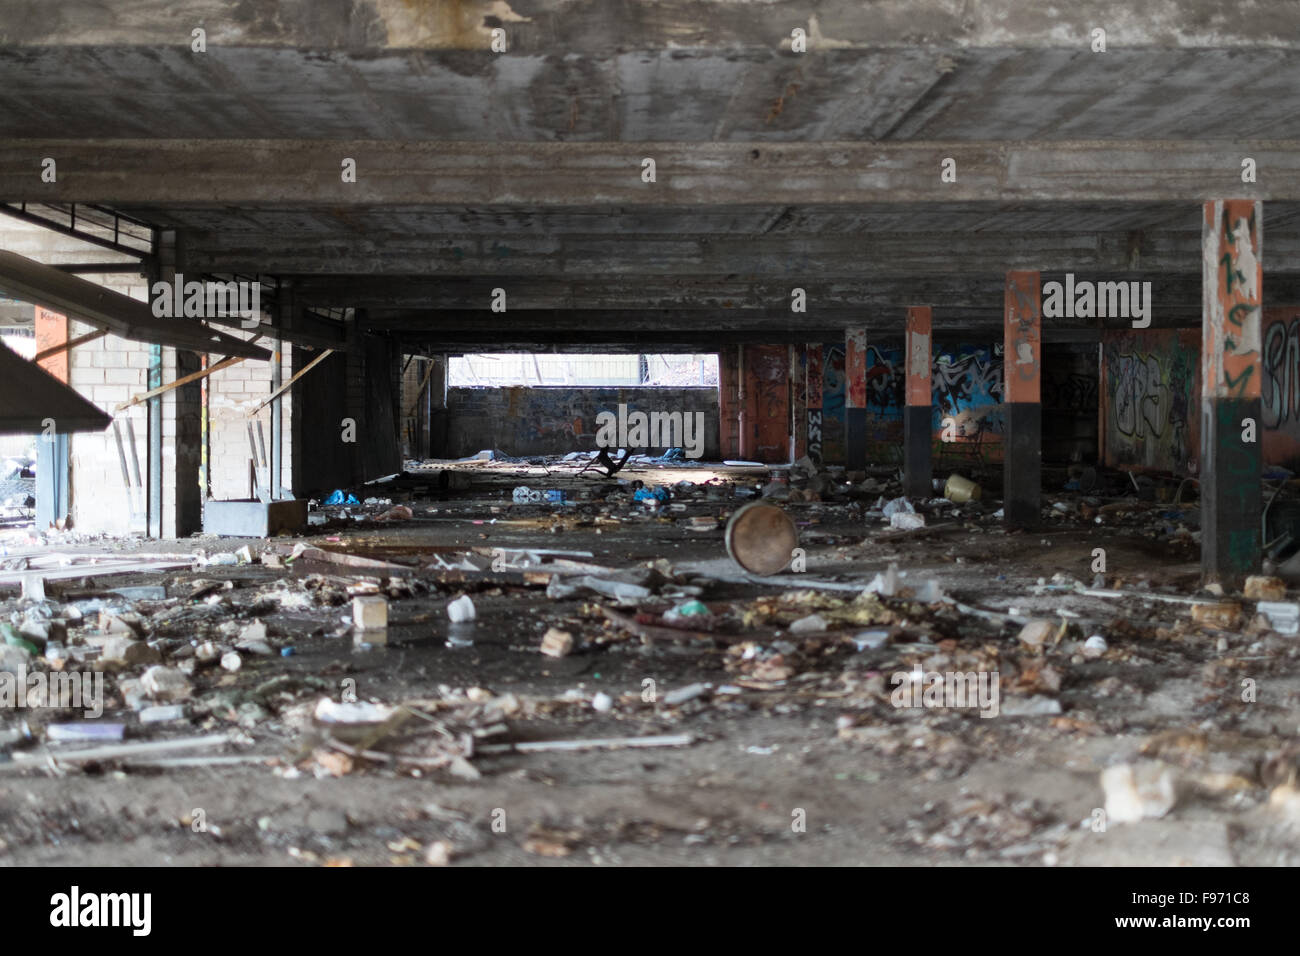 Mess In Abandoned Building - Stock Image